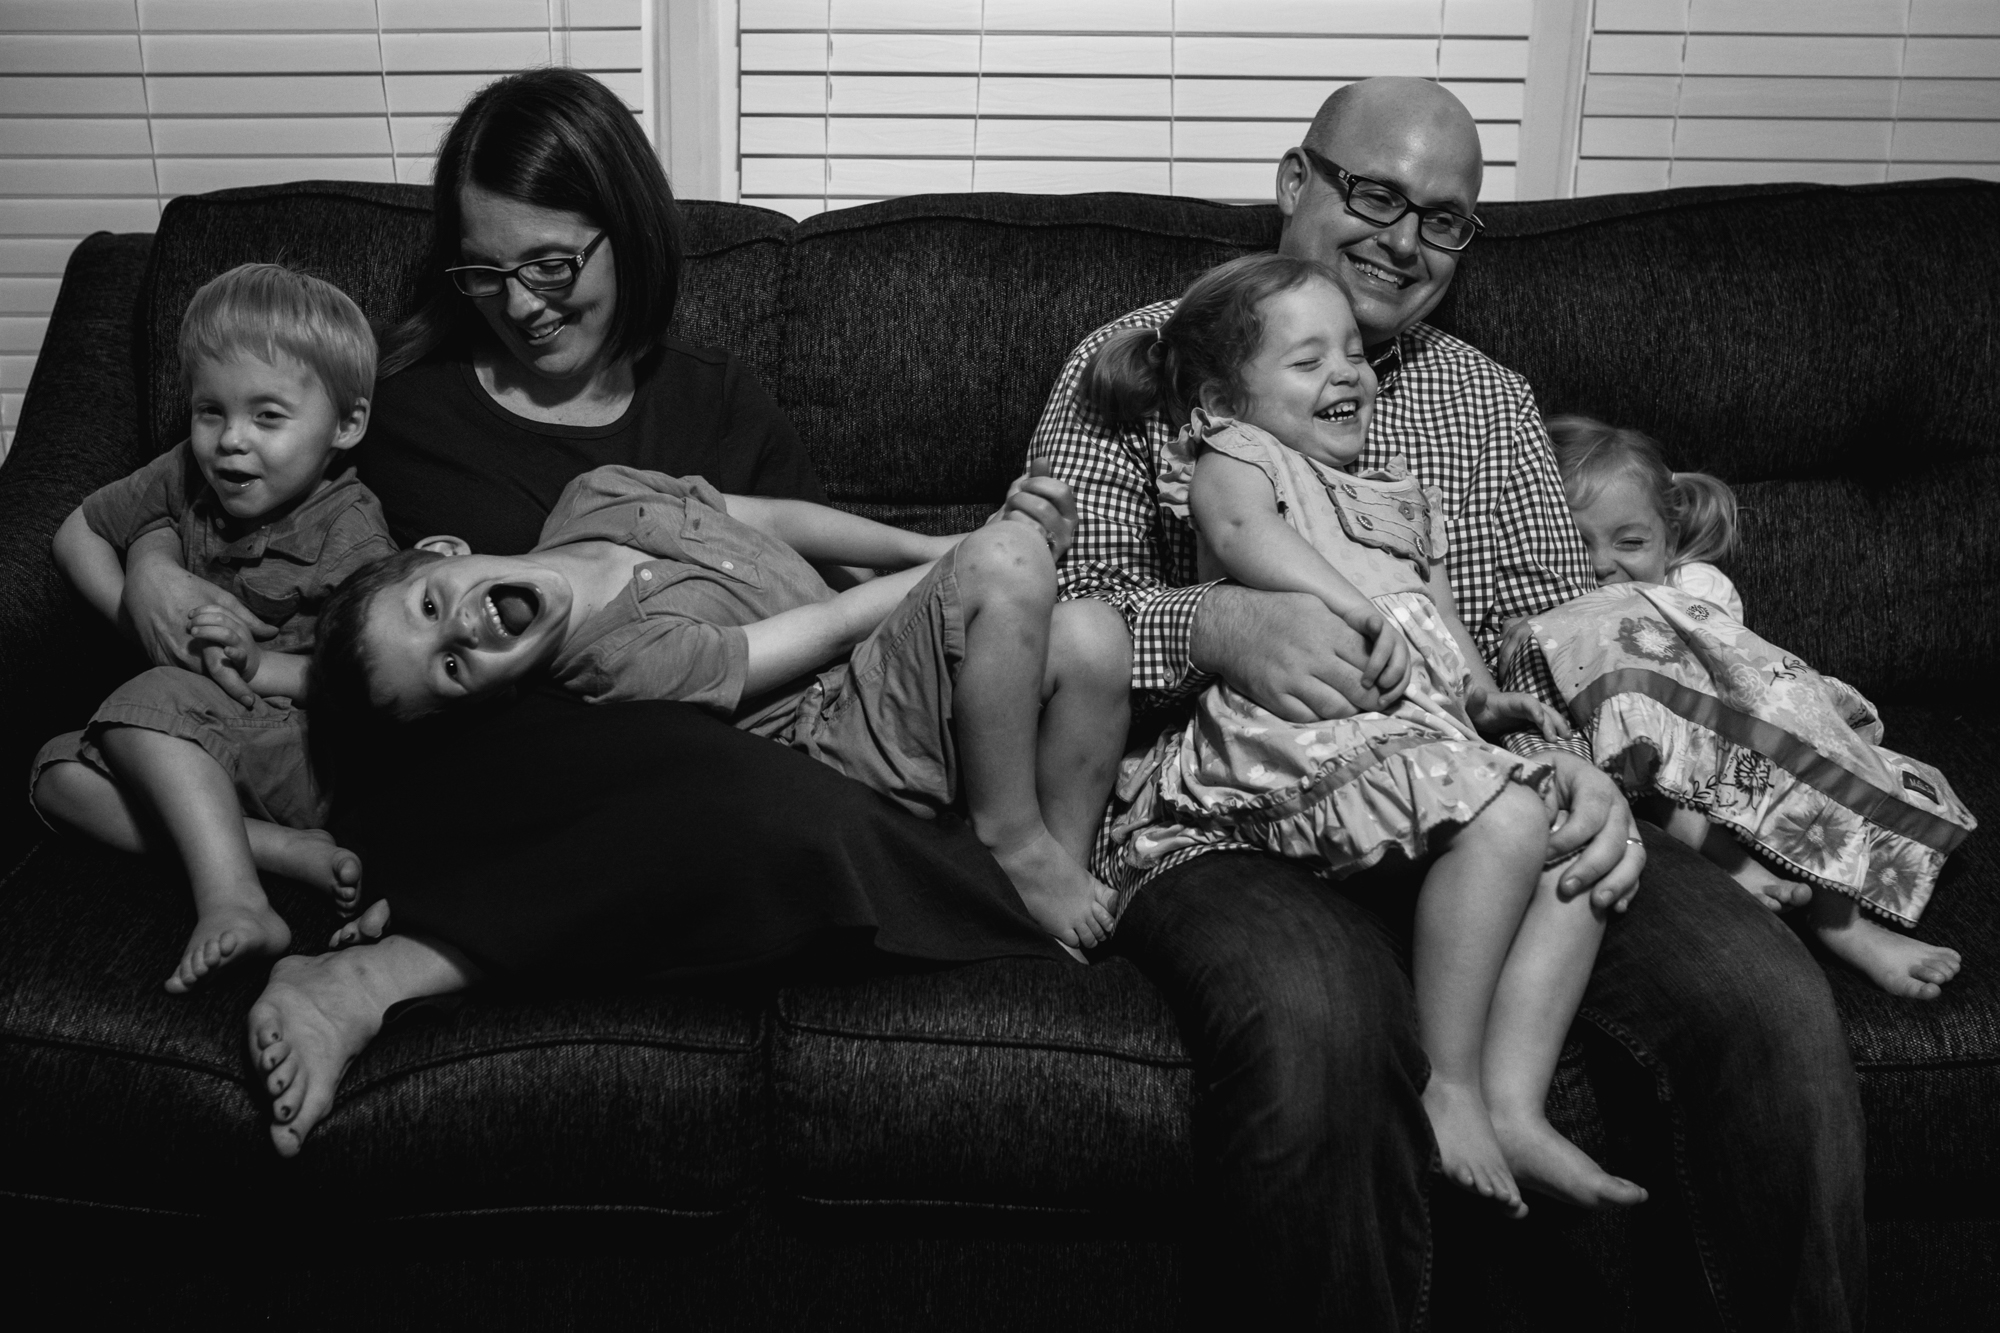 A family sitting on the couch with kids laughing and goofing